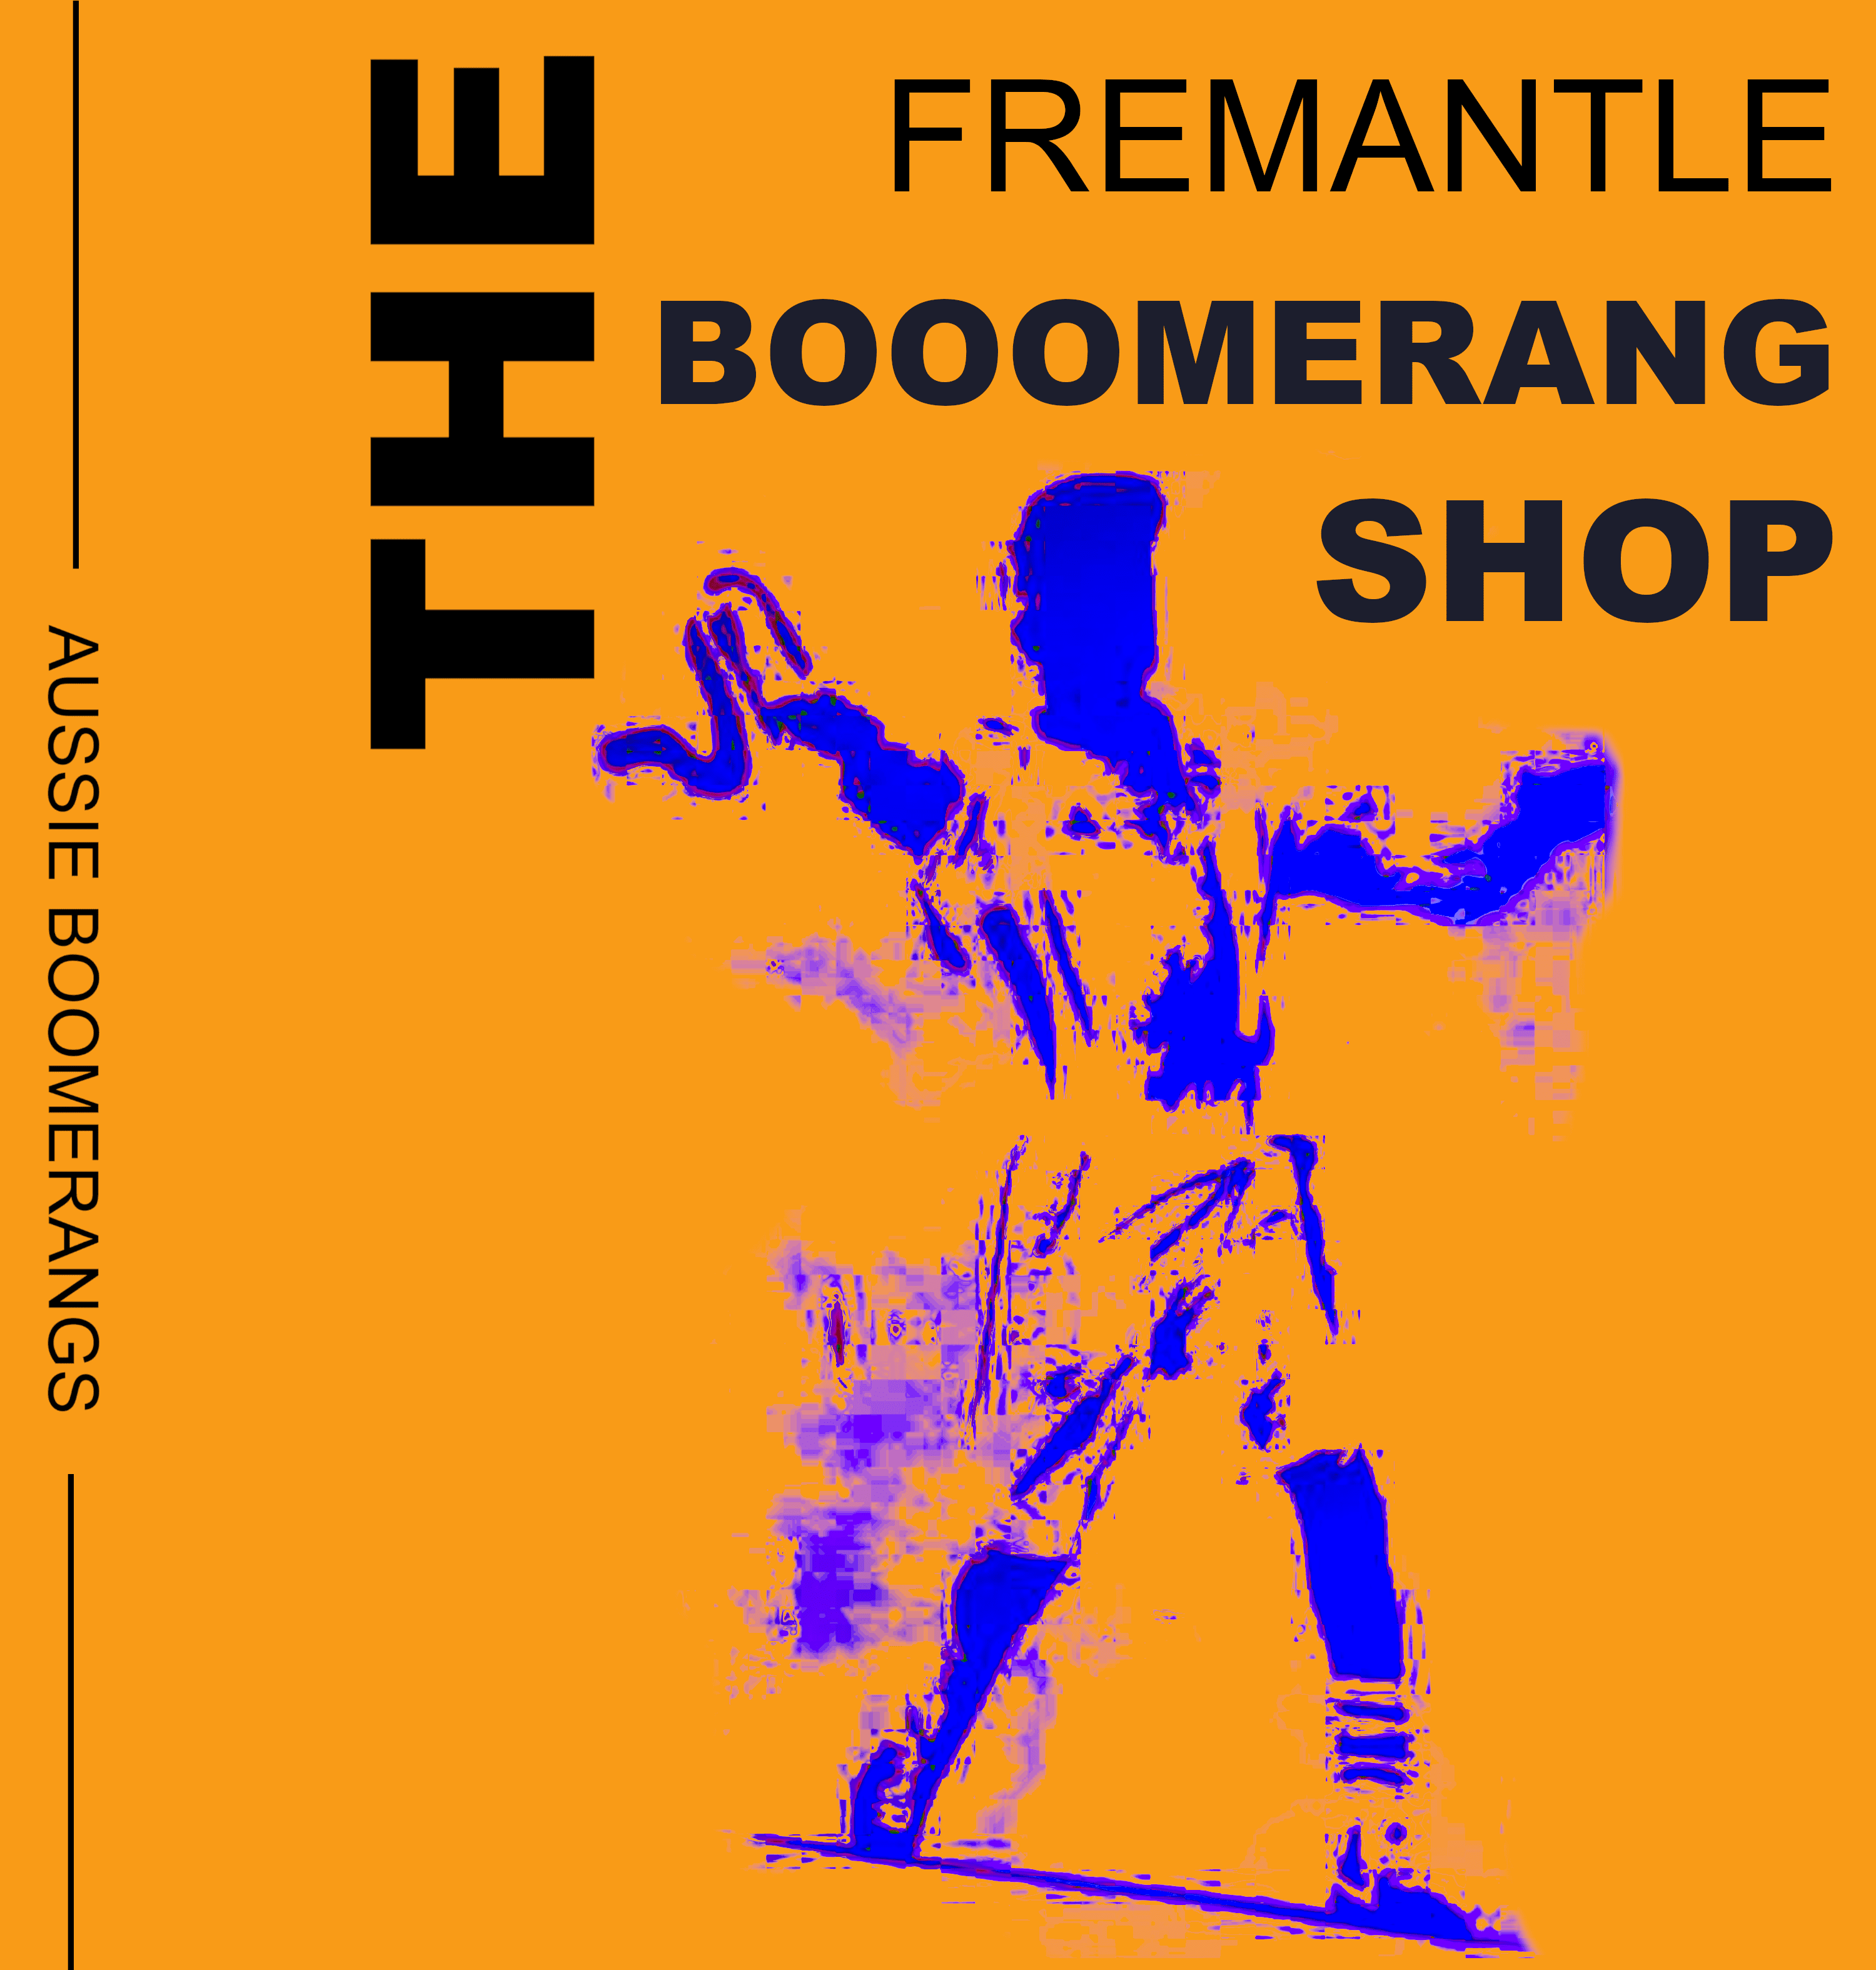 Image for The Fremantle Boomerang Shop